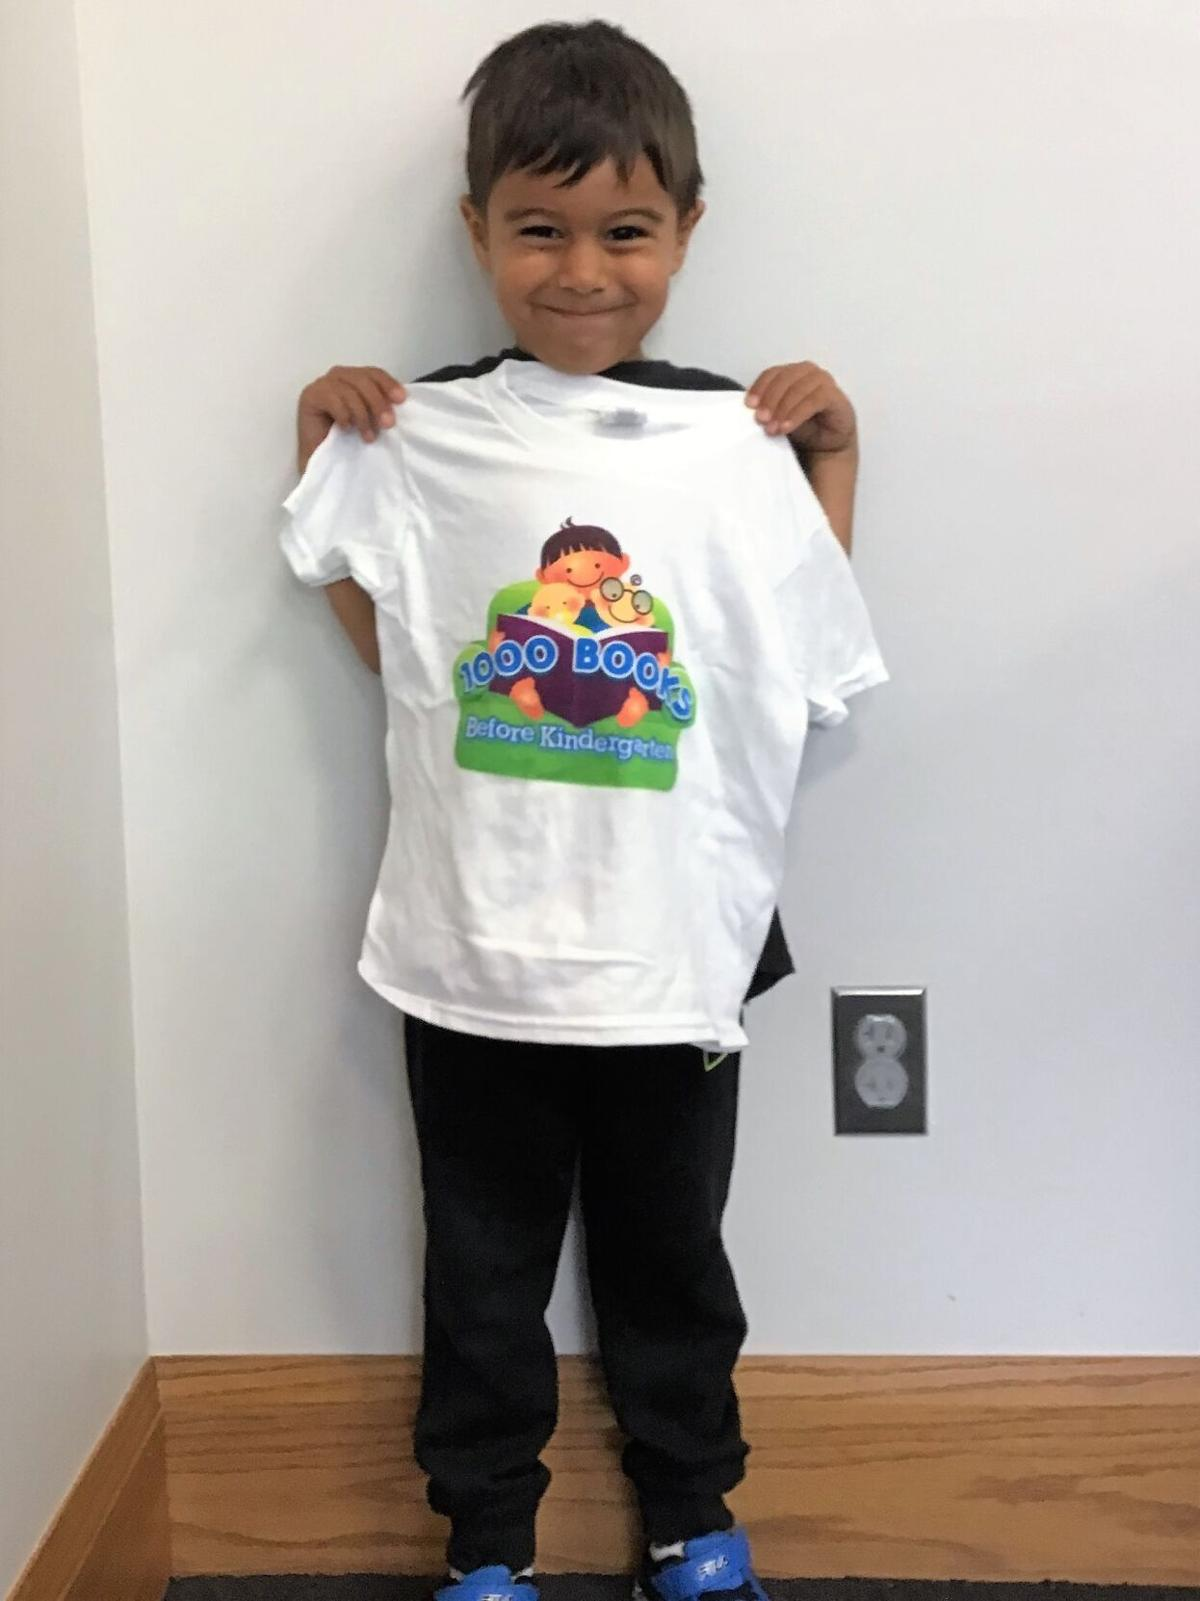 Two young readers hit 1,000 book goal - Xavi